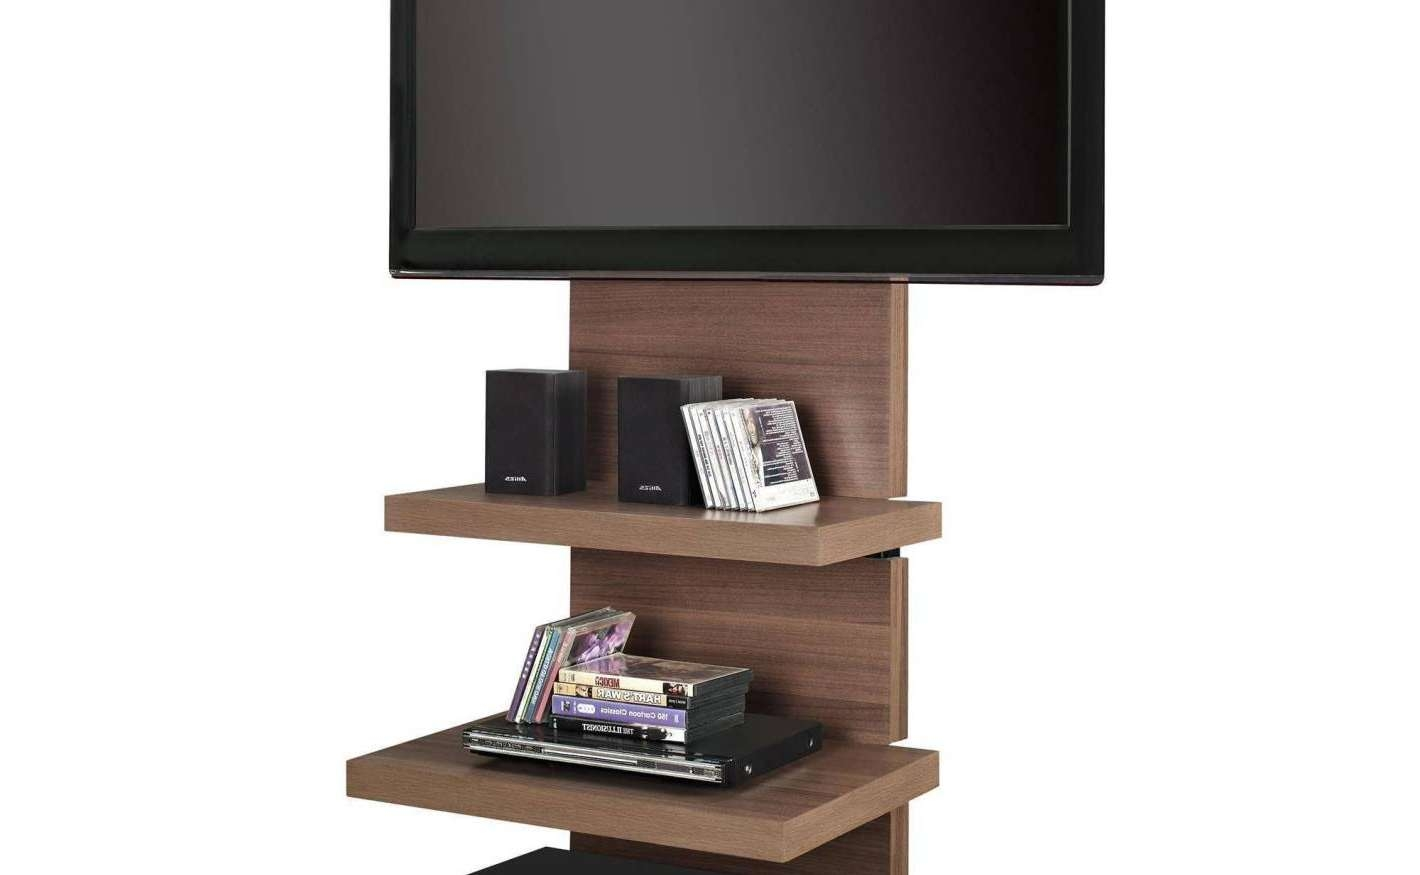 Tv : Exquisite 65 Inch Tv Stands With Integrated Mount Interesting In 65 Inch Tv Stands With Integrated Mount (View 7 of 15)